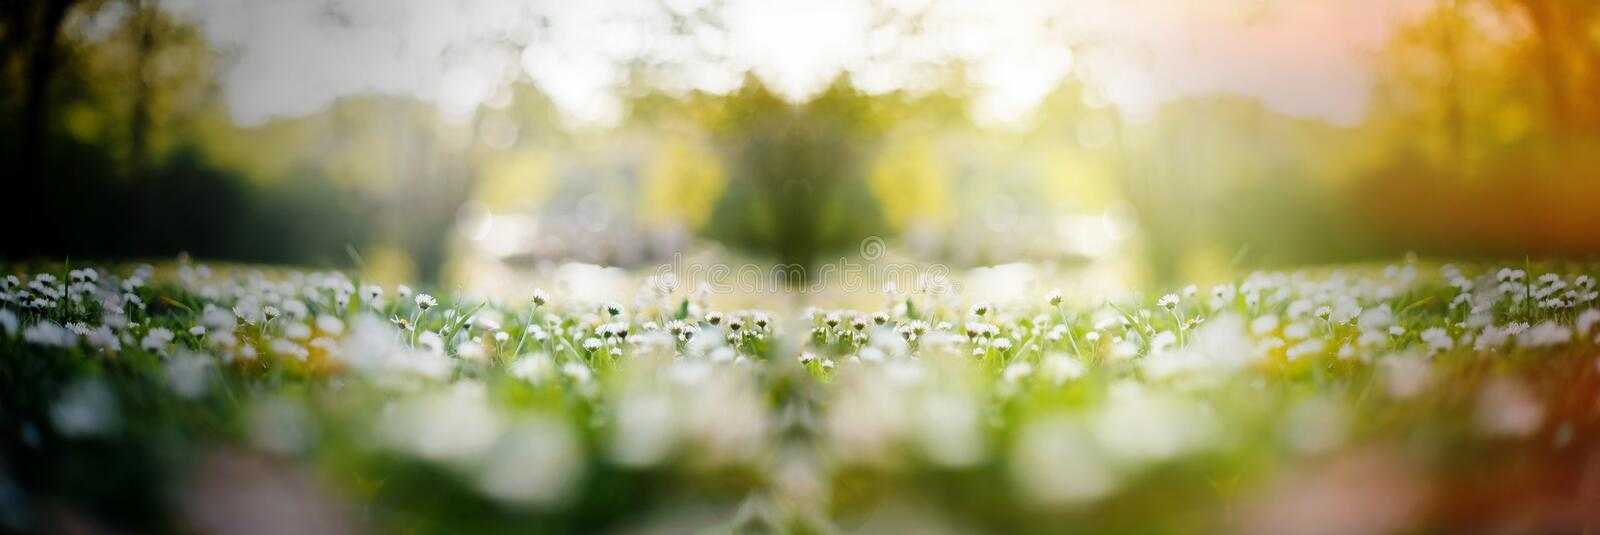 Daisy field with multiple flowers and sun flare stock image